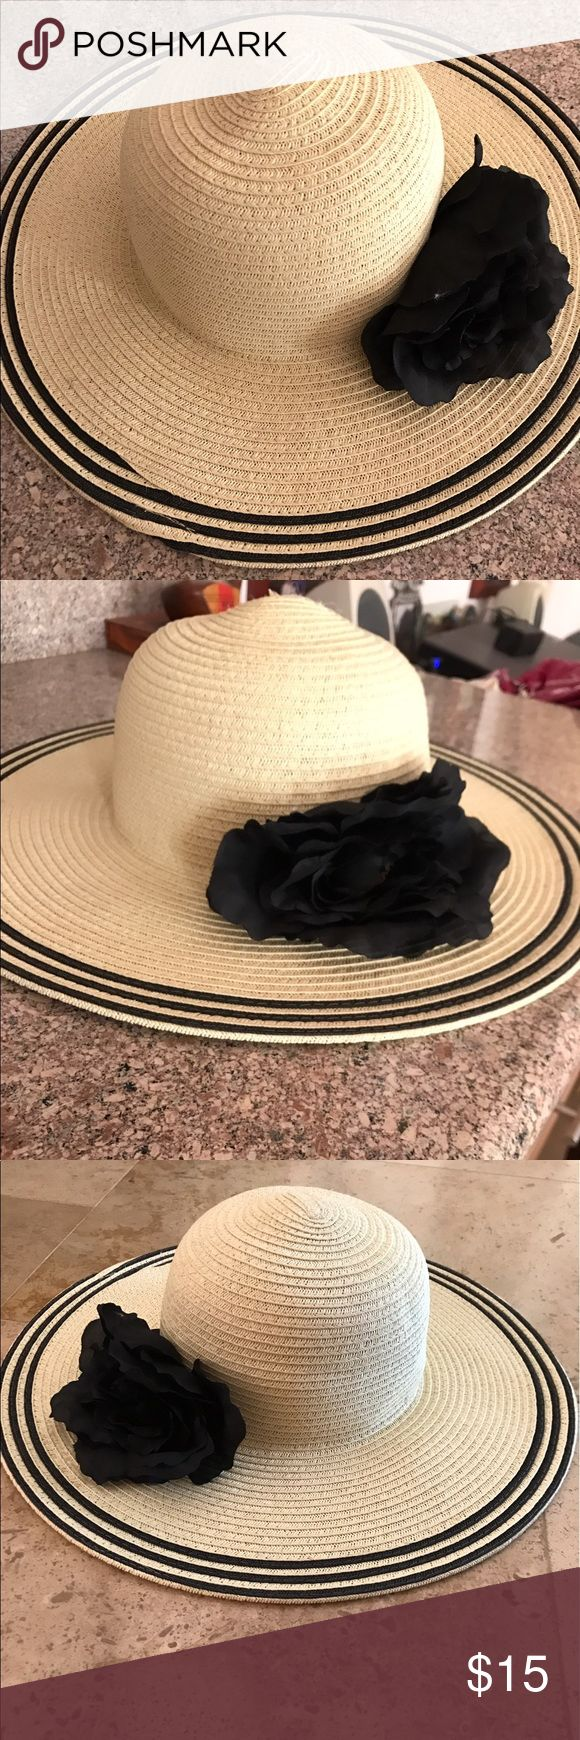 Floppy summer hat with black detail perfect condition Nine West summer hat. slightly relaxed/floppy, but still structured! Nine West Accessories Hats